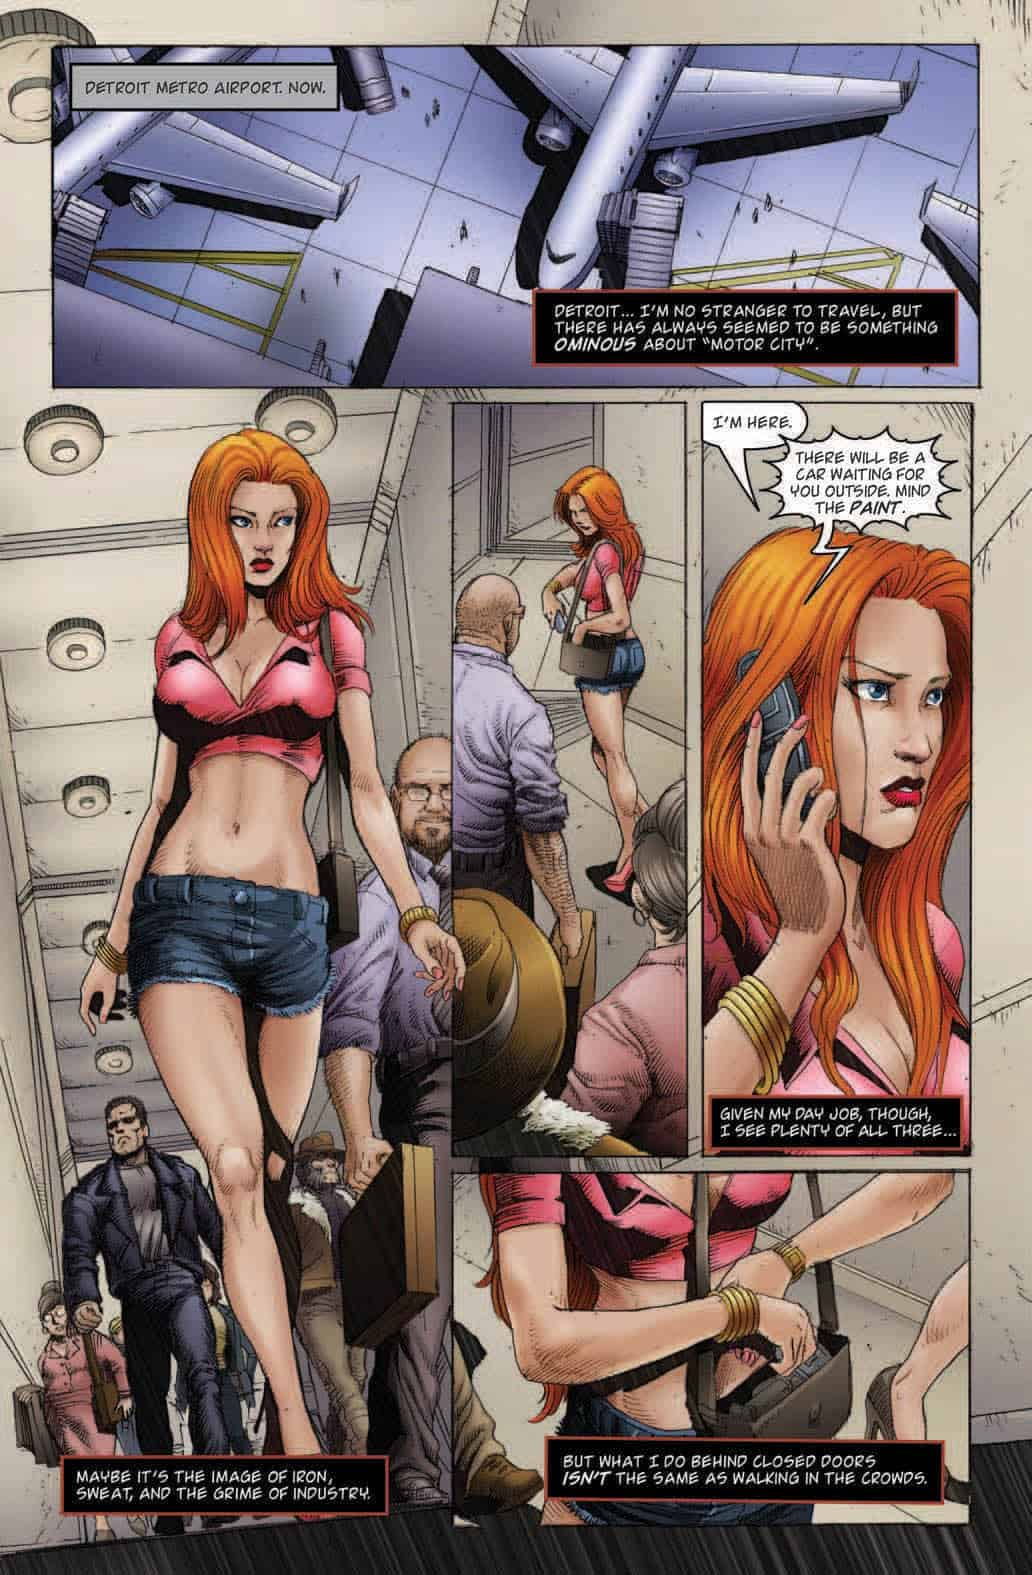 Simmons-Comics-Anthology-Vol-2-image-05